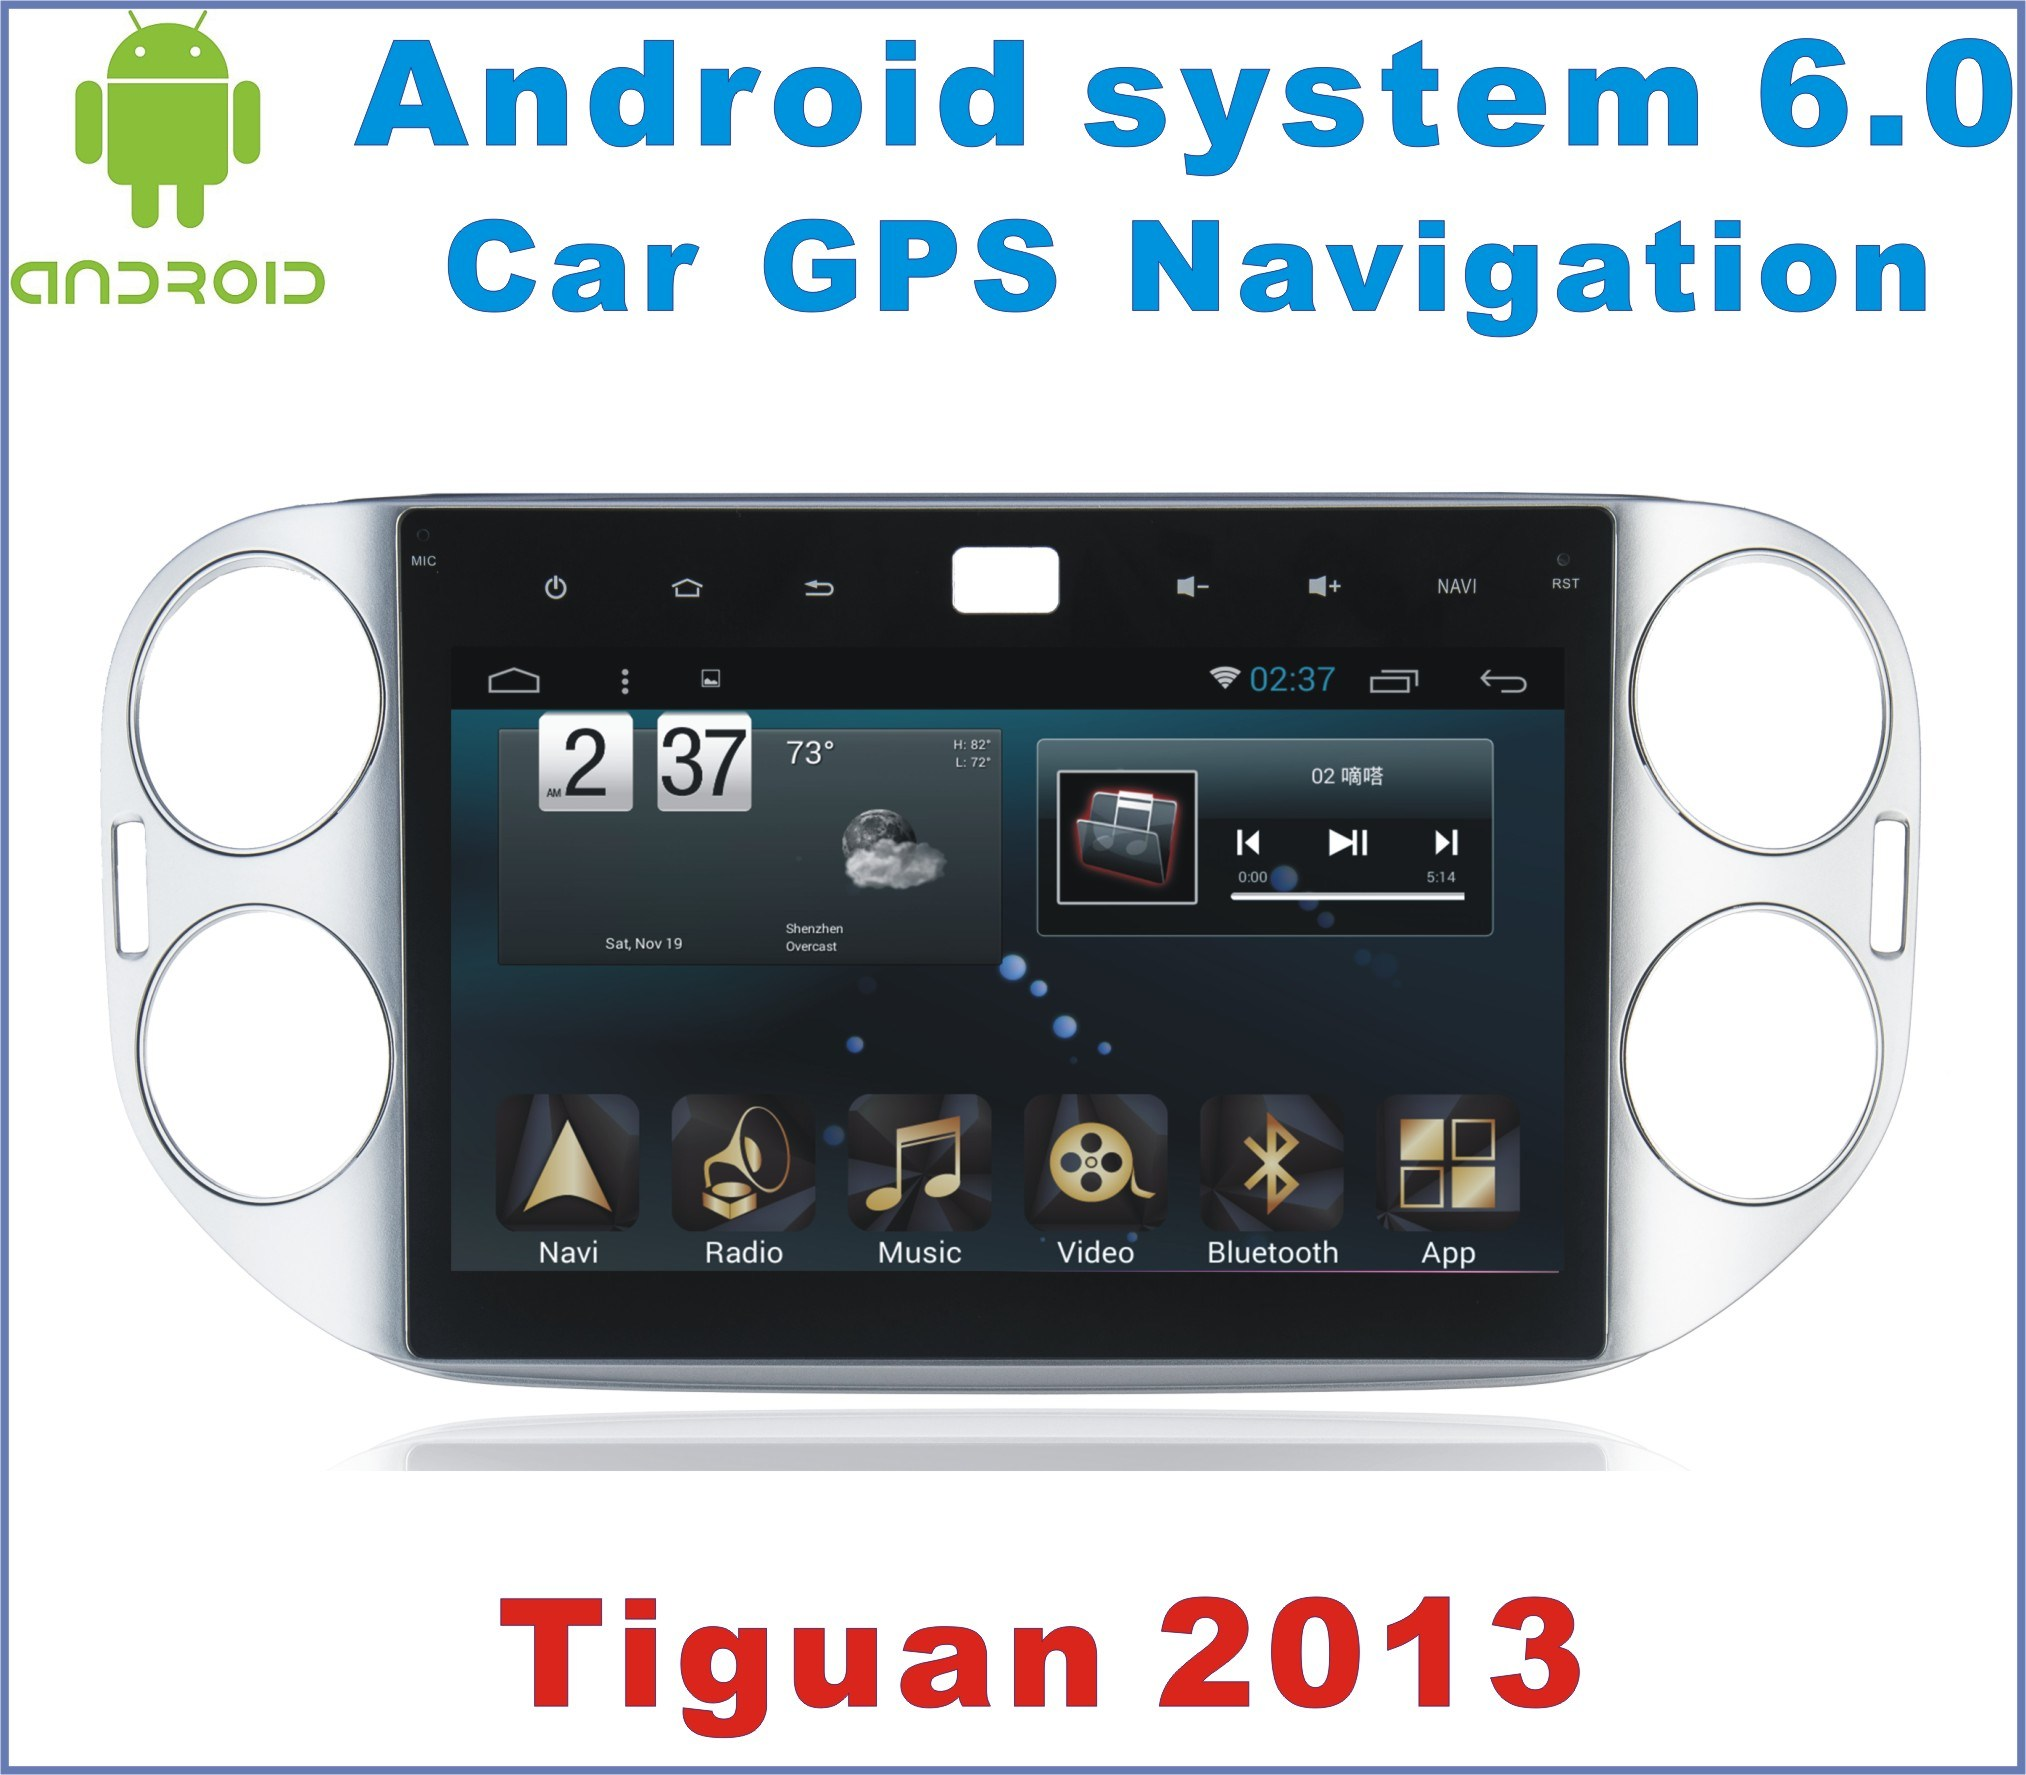 New Ui Android System 6.0 Car GPS for Tiguan 2013 with Car Navigation